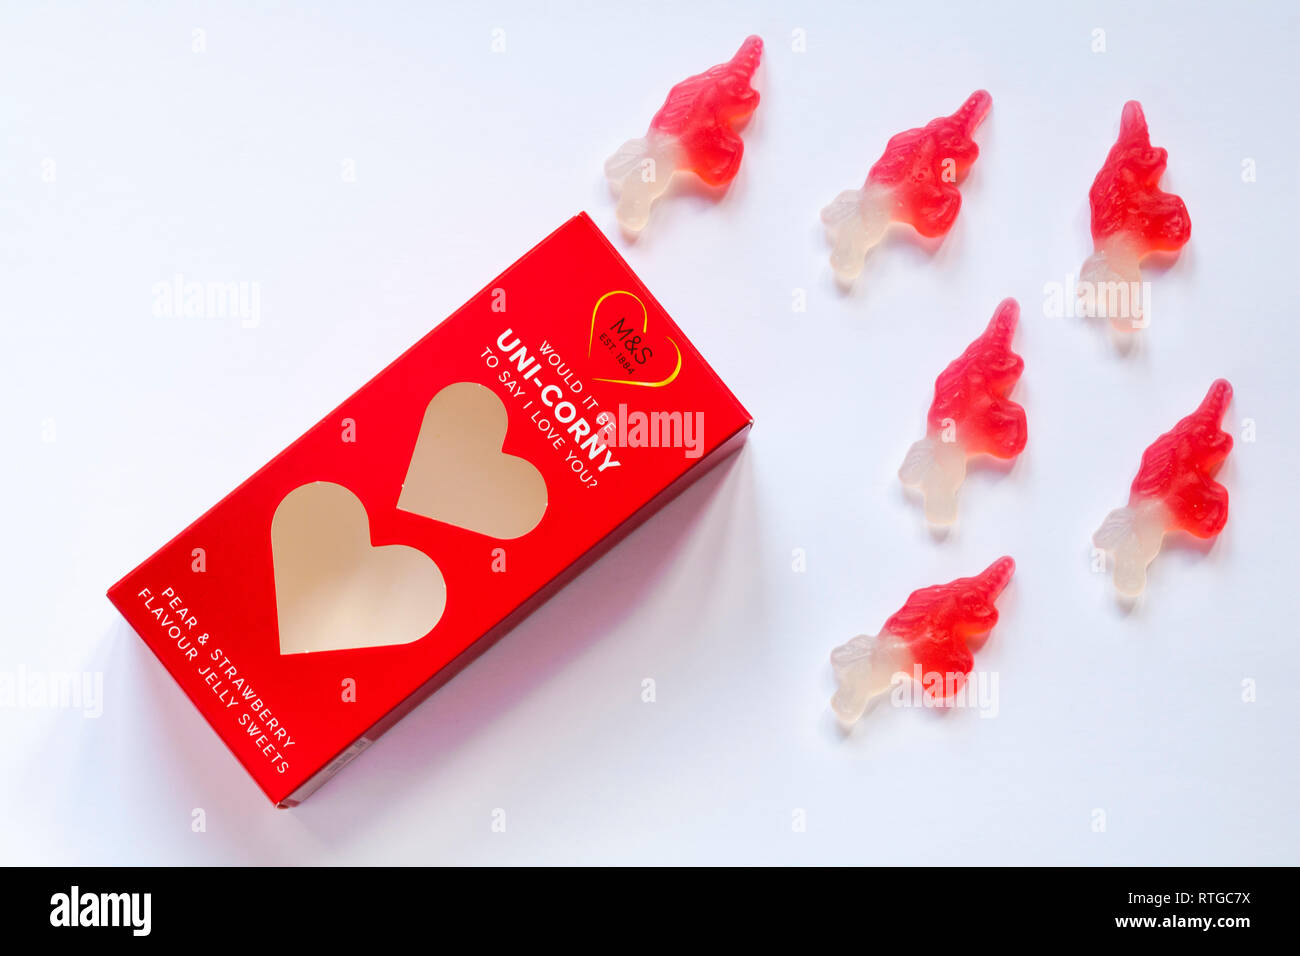 Box of M&S would it be uni-corny to say I love you pear & strawberry flavour jelly sweets opened to show contents on white - for Valentines Day - Stock Image